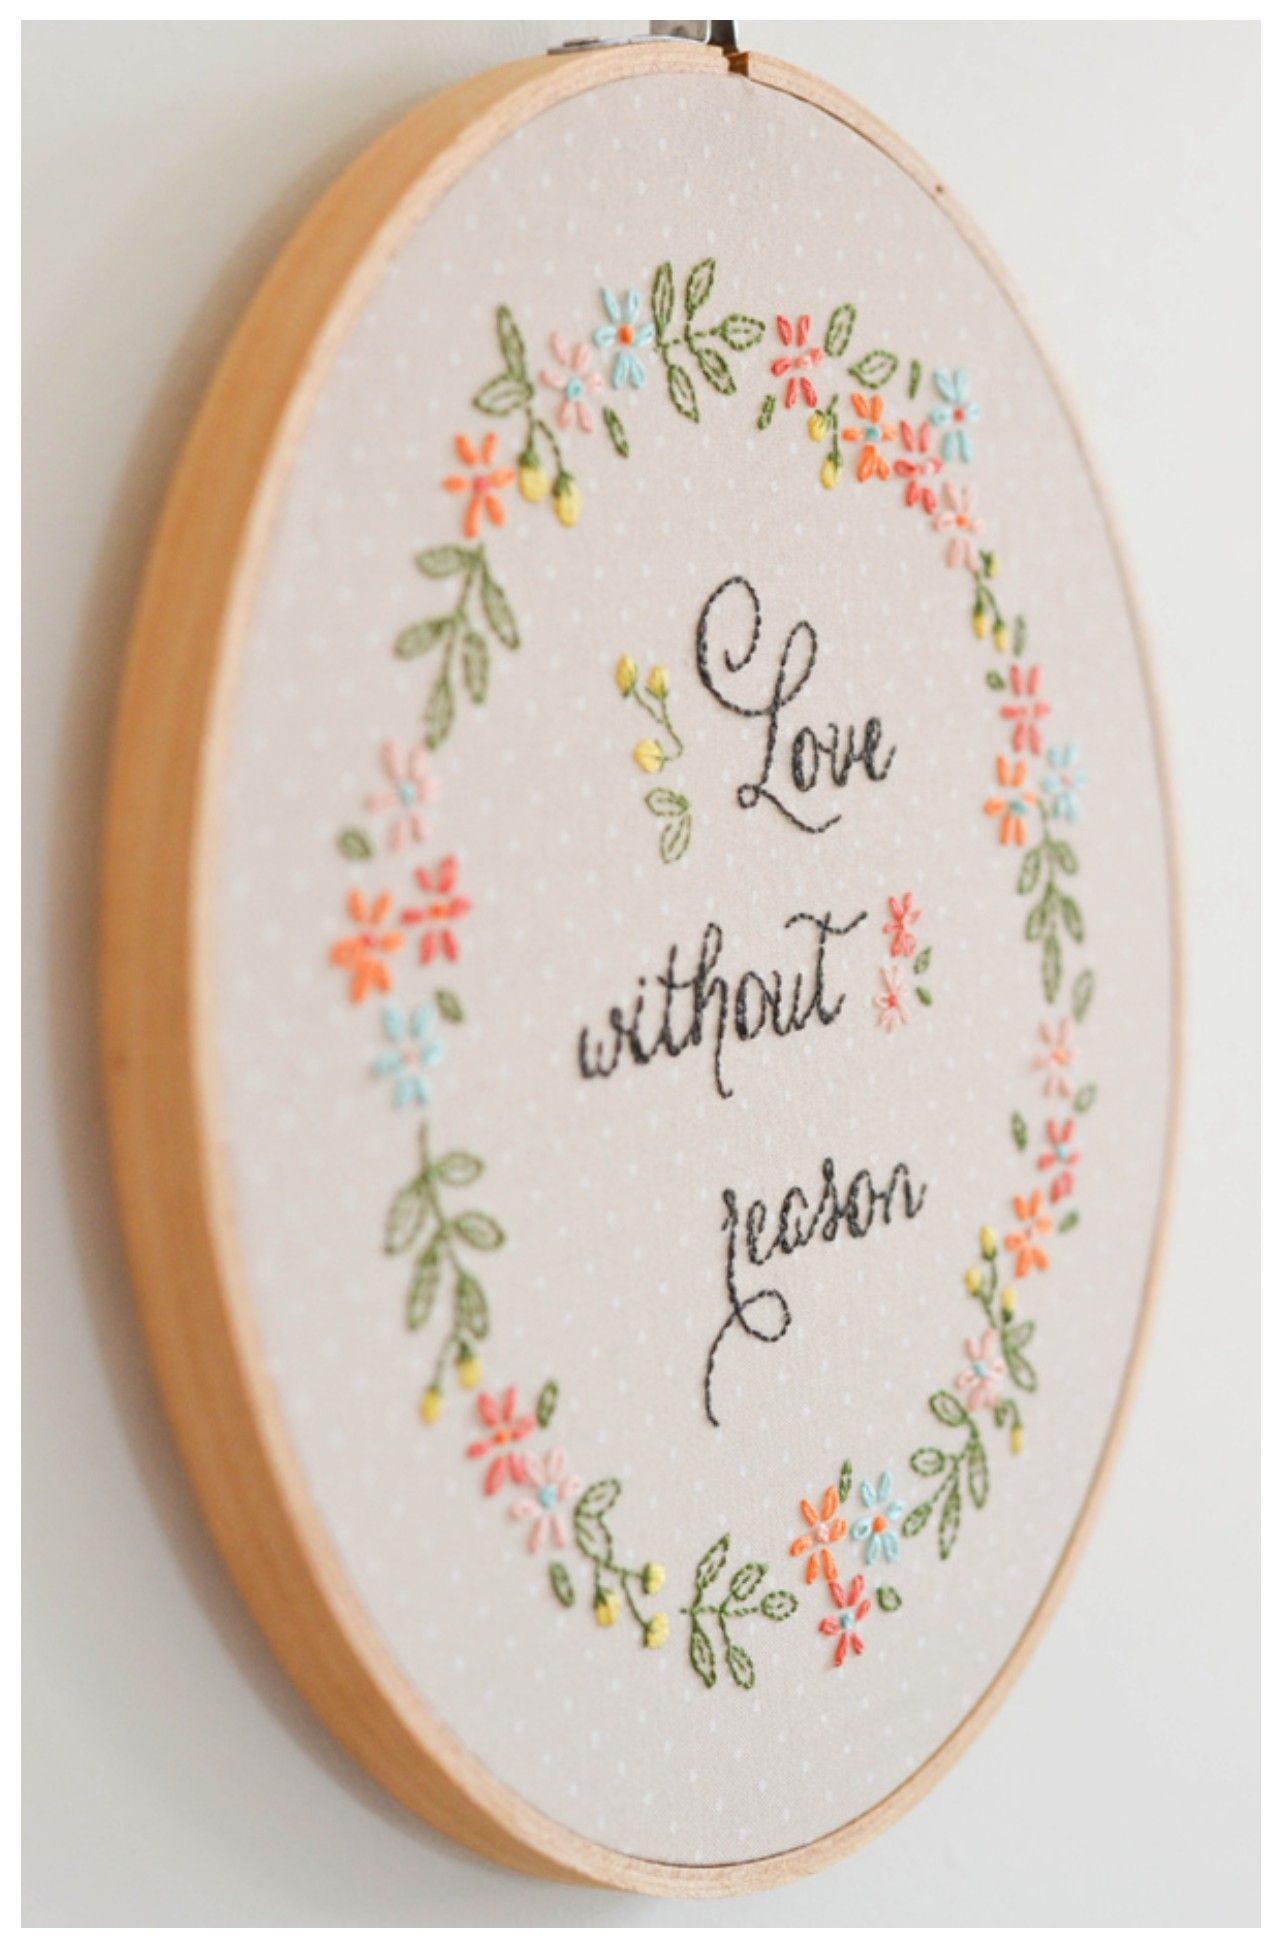 Pin de Erica Tatum en Cross stitch | Pinterest | Novios